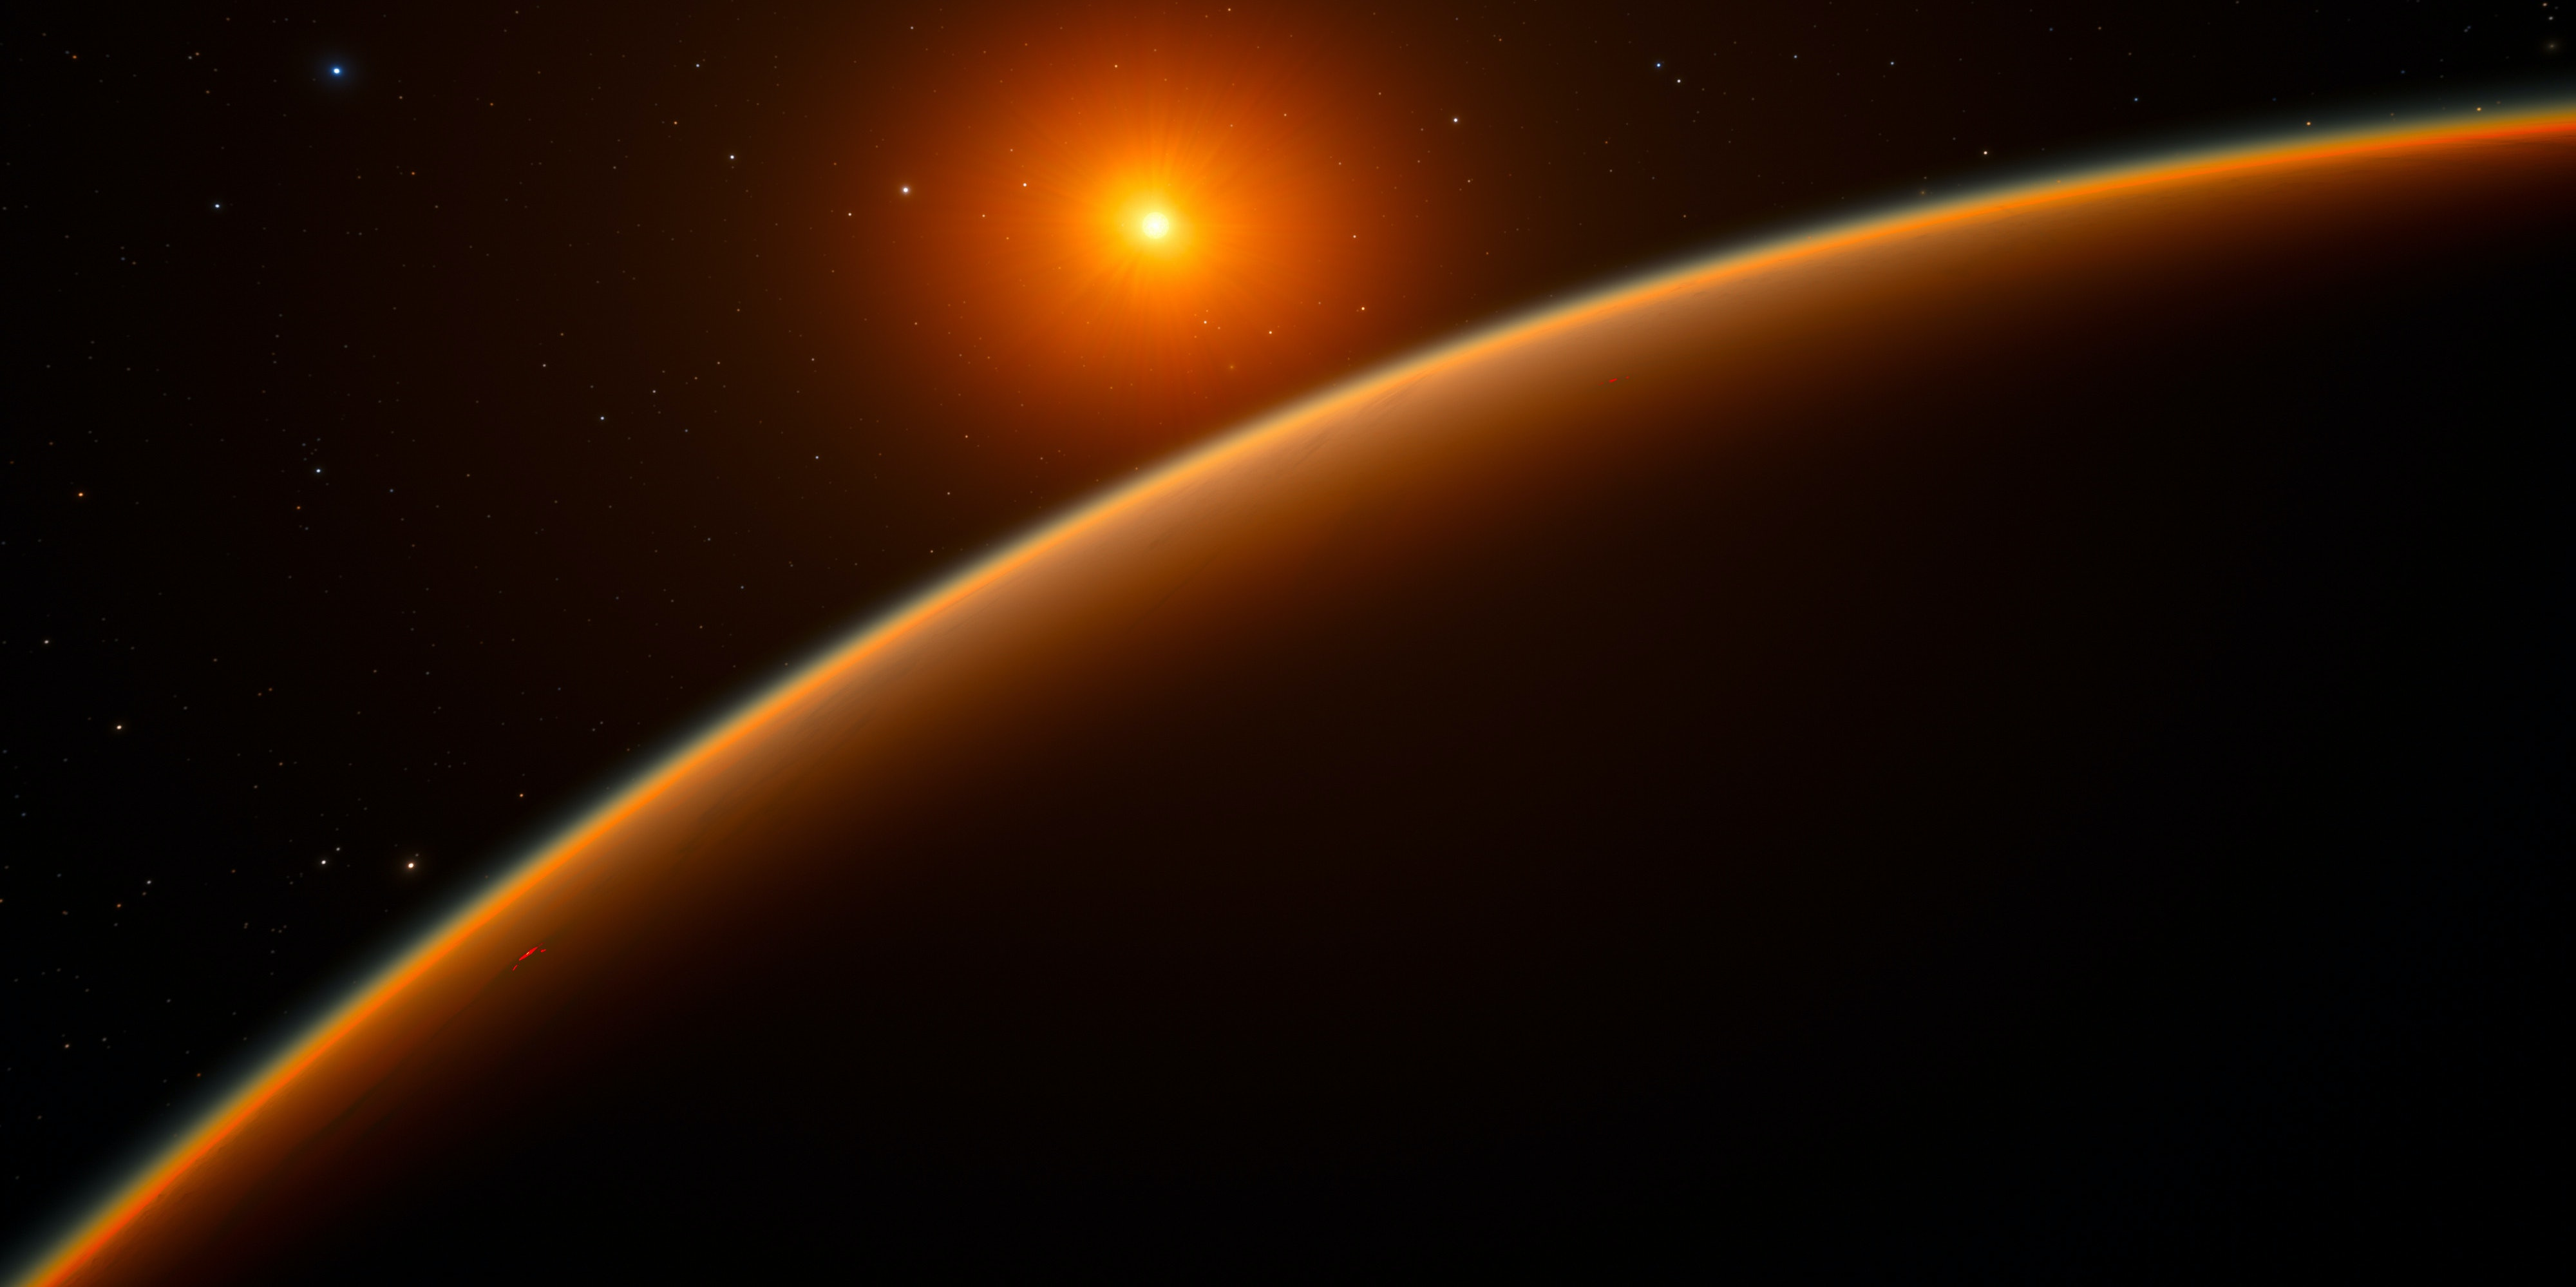 This New Super-Earth Is the Best Hope for Finding Alien Life